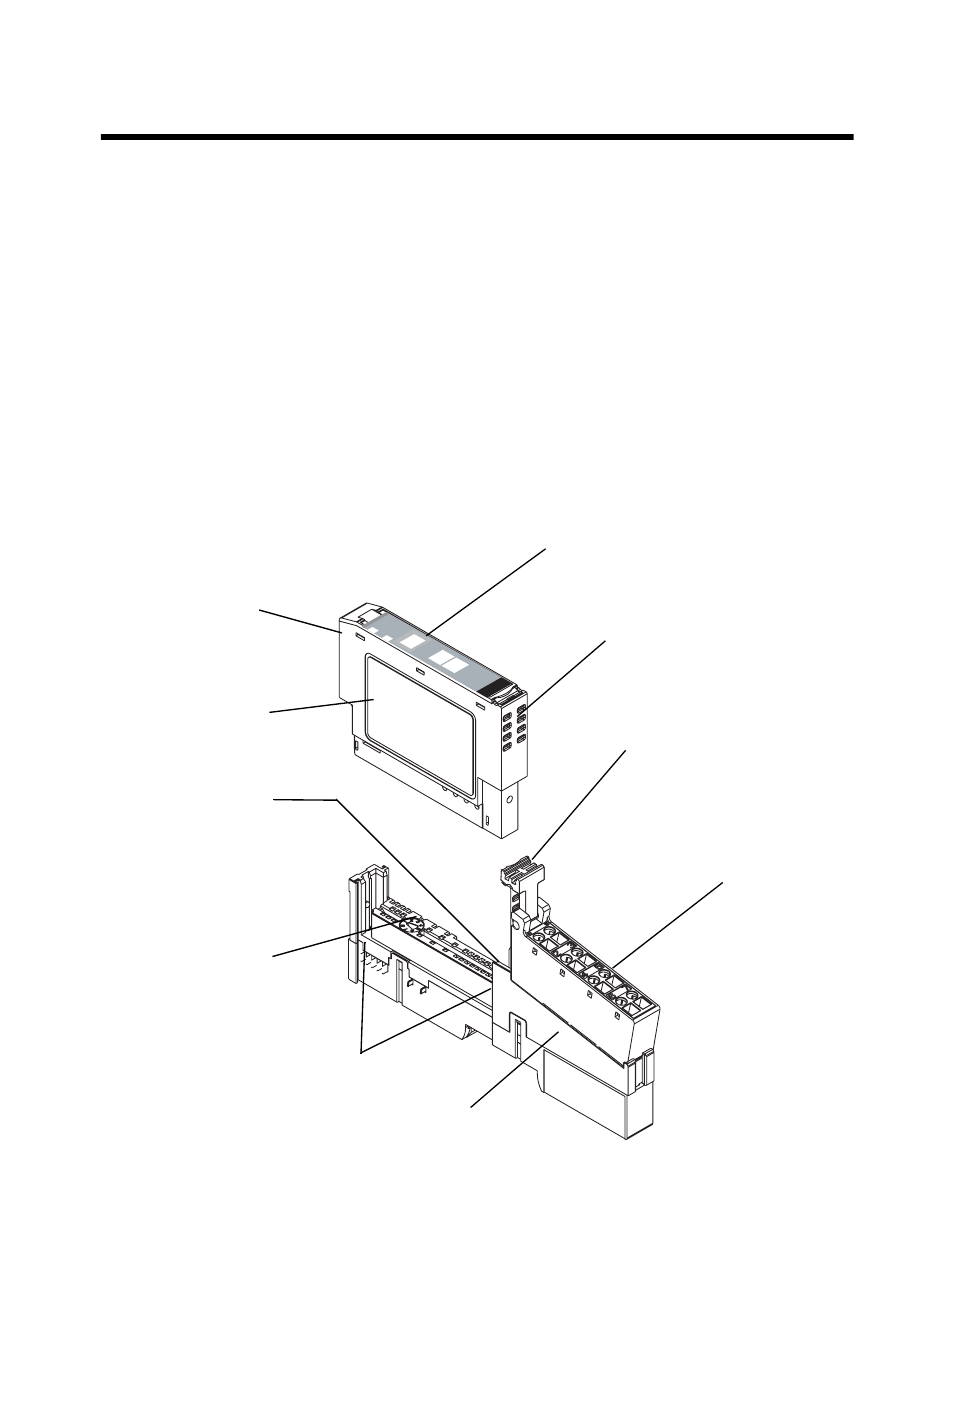 medium resolution of before you begin identify module components rockwell automation 1734 oe2v c point i o 2 current and 2 voltage output analog modules user manual page 5